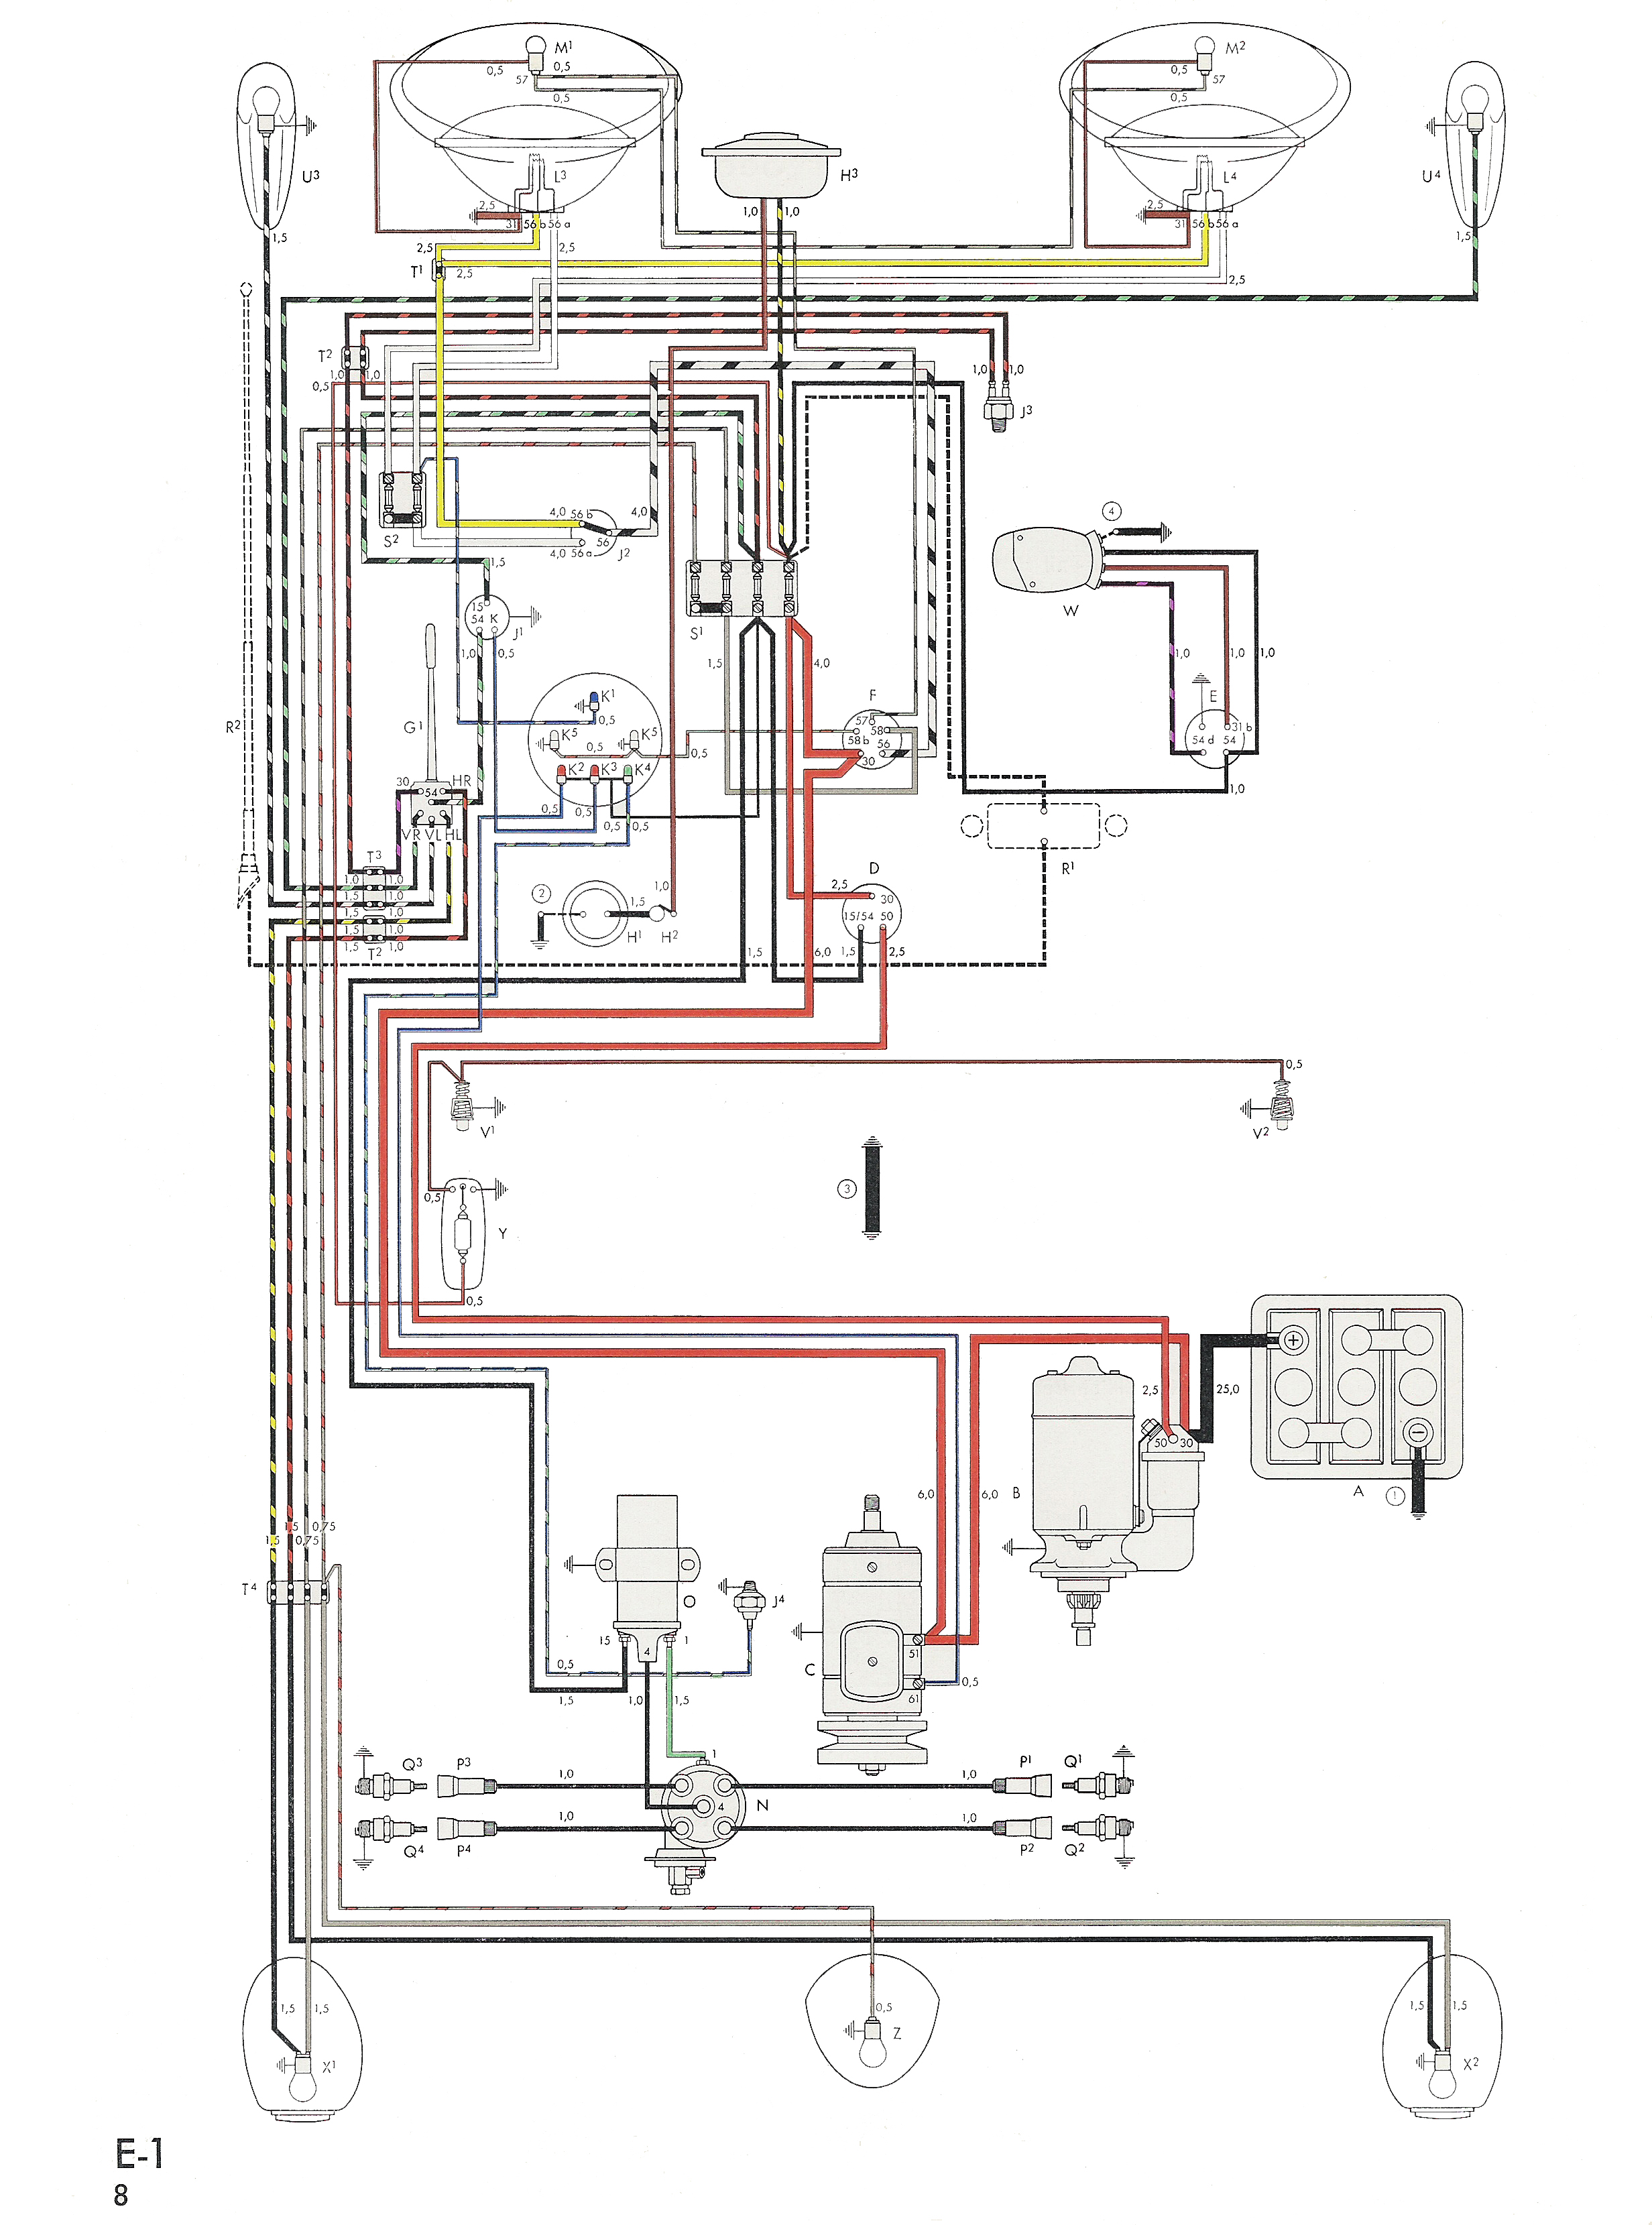 bug_58_USA_300dpi thesamba com type 1 wiring diagrams find wiring diagram for 87 ford f 150 at honlapkeszites.co